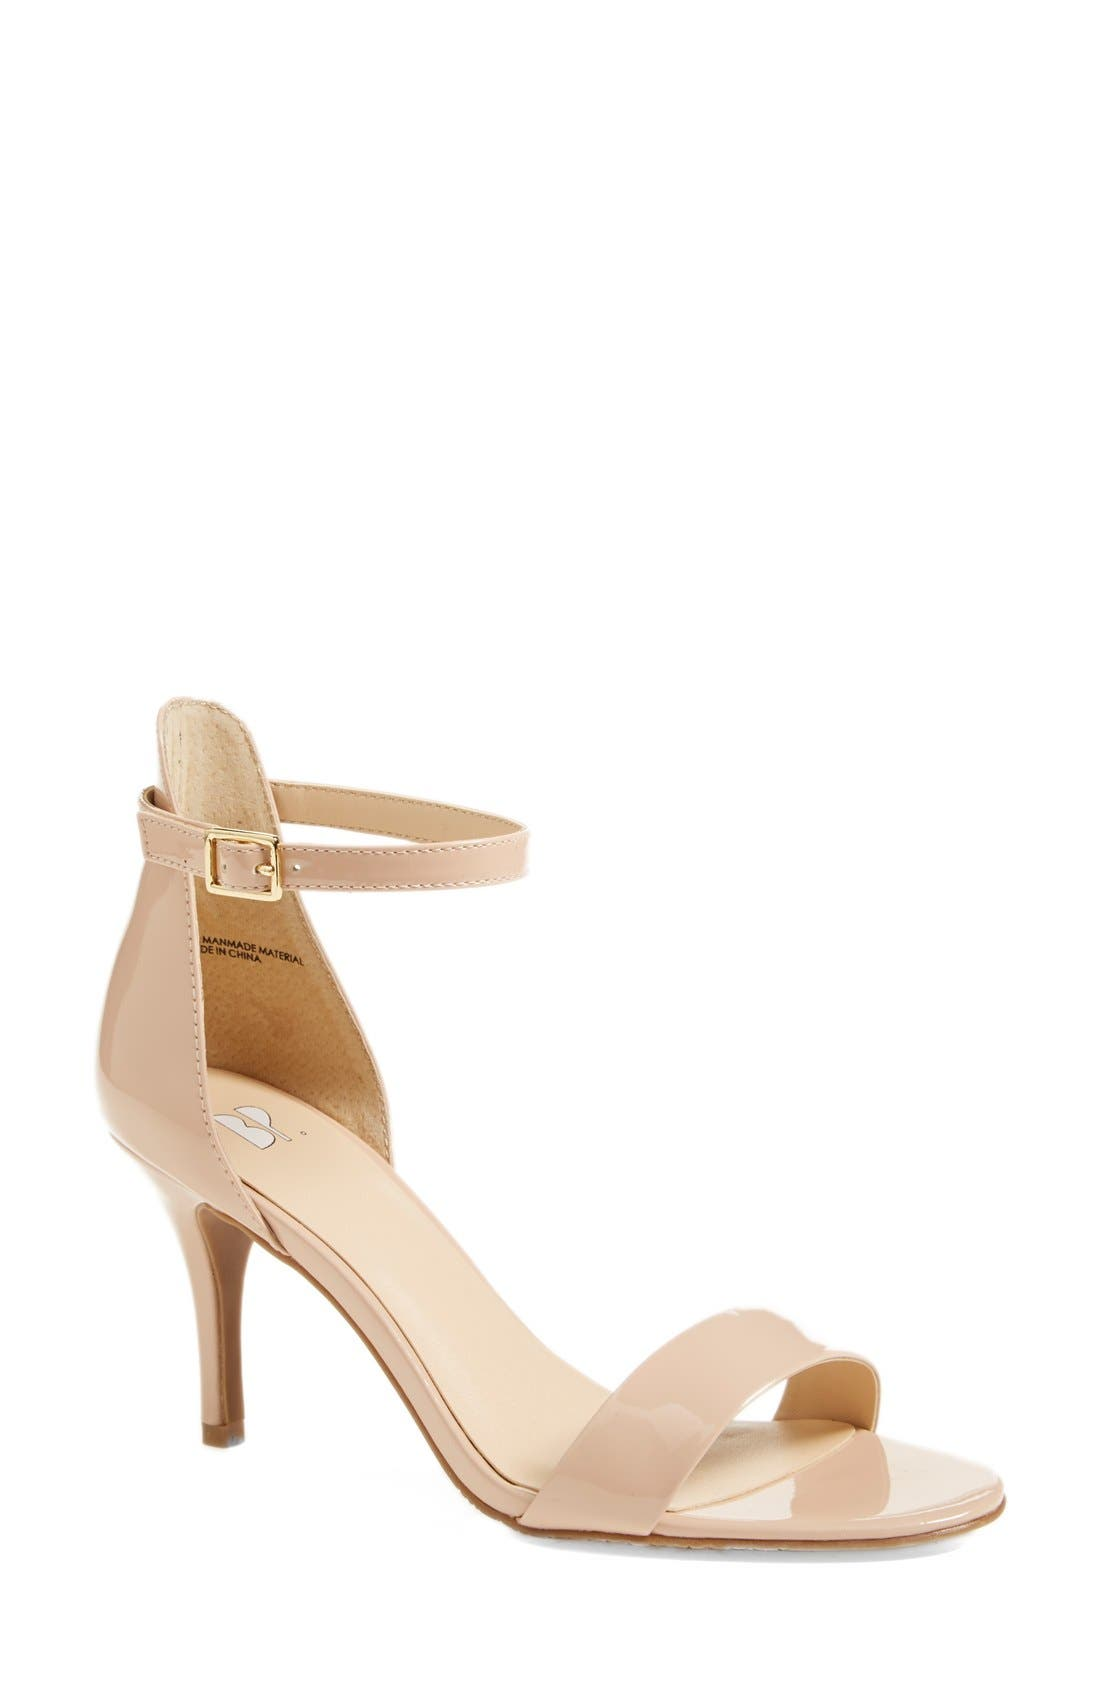 Main Image - BP. 'Luminate' Open Toe Dress Sandal (Women)